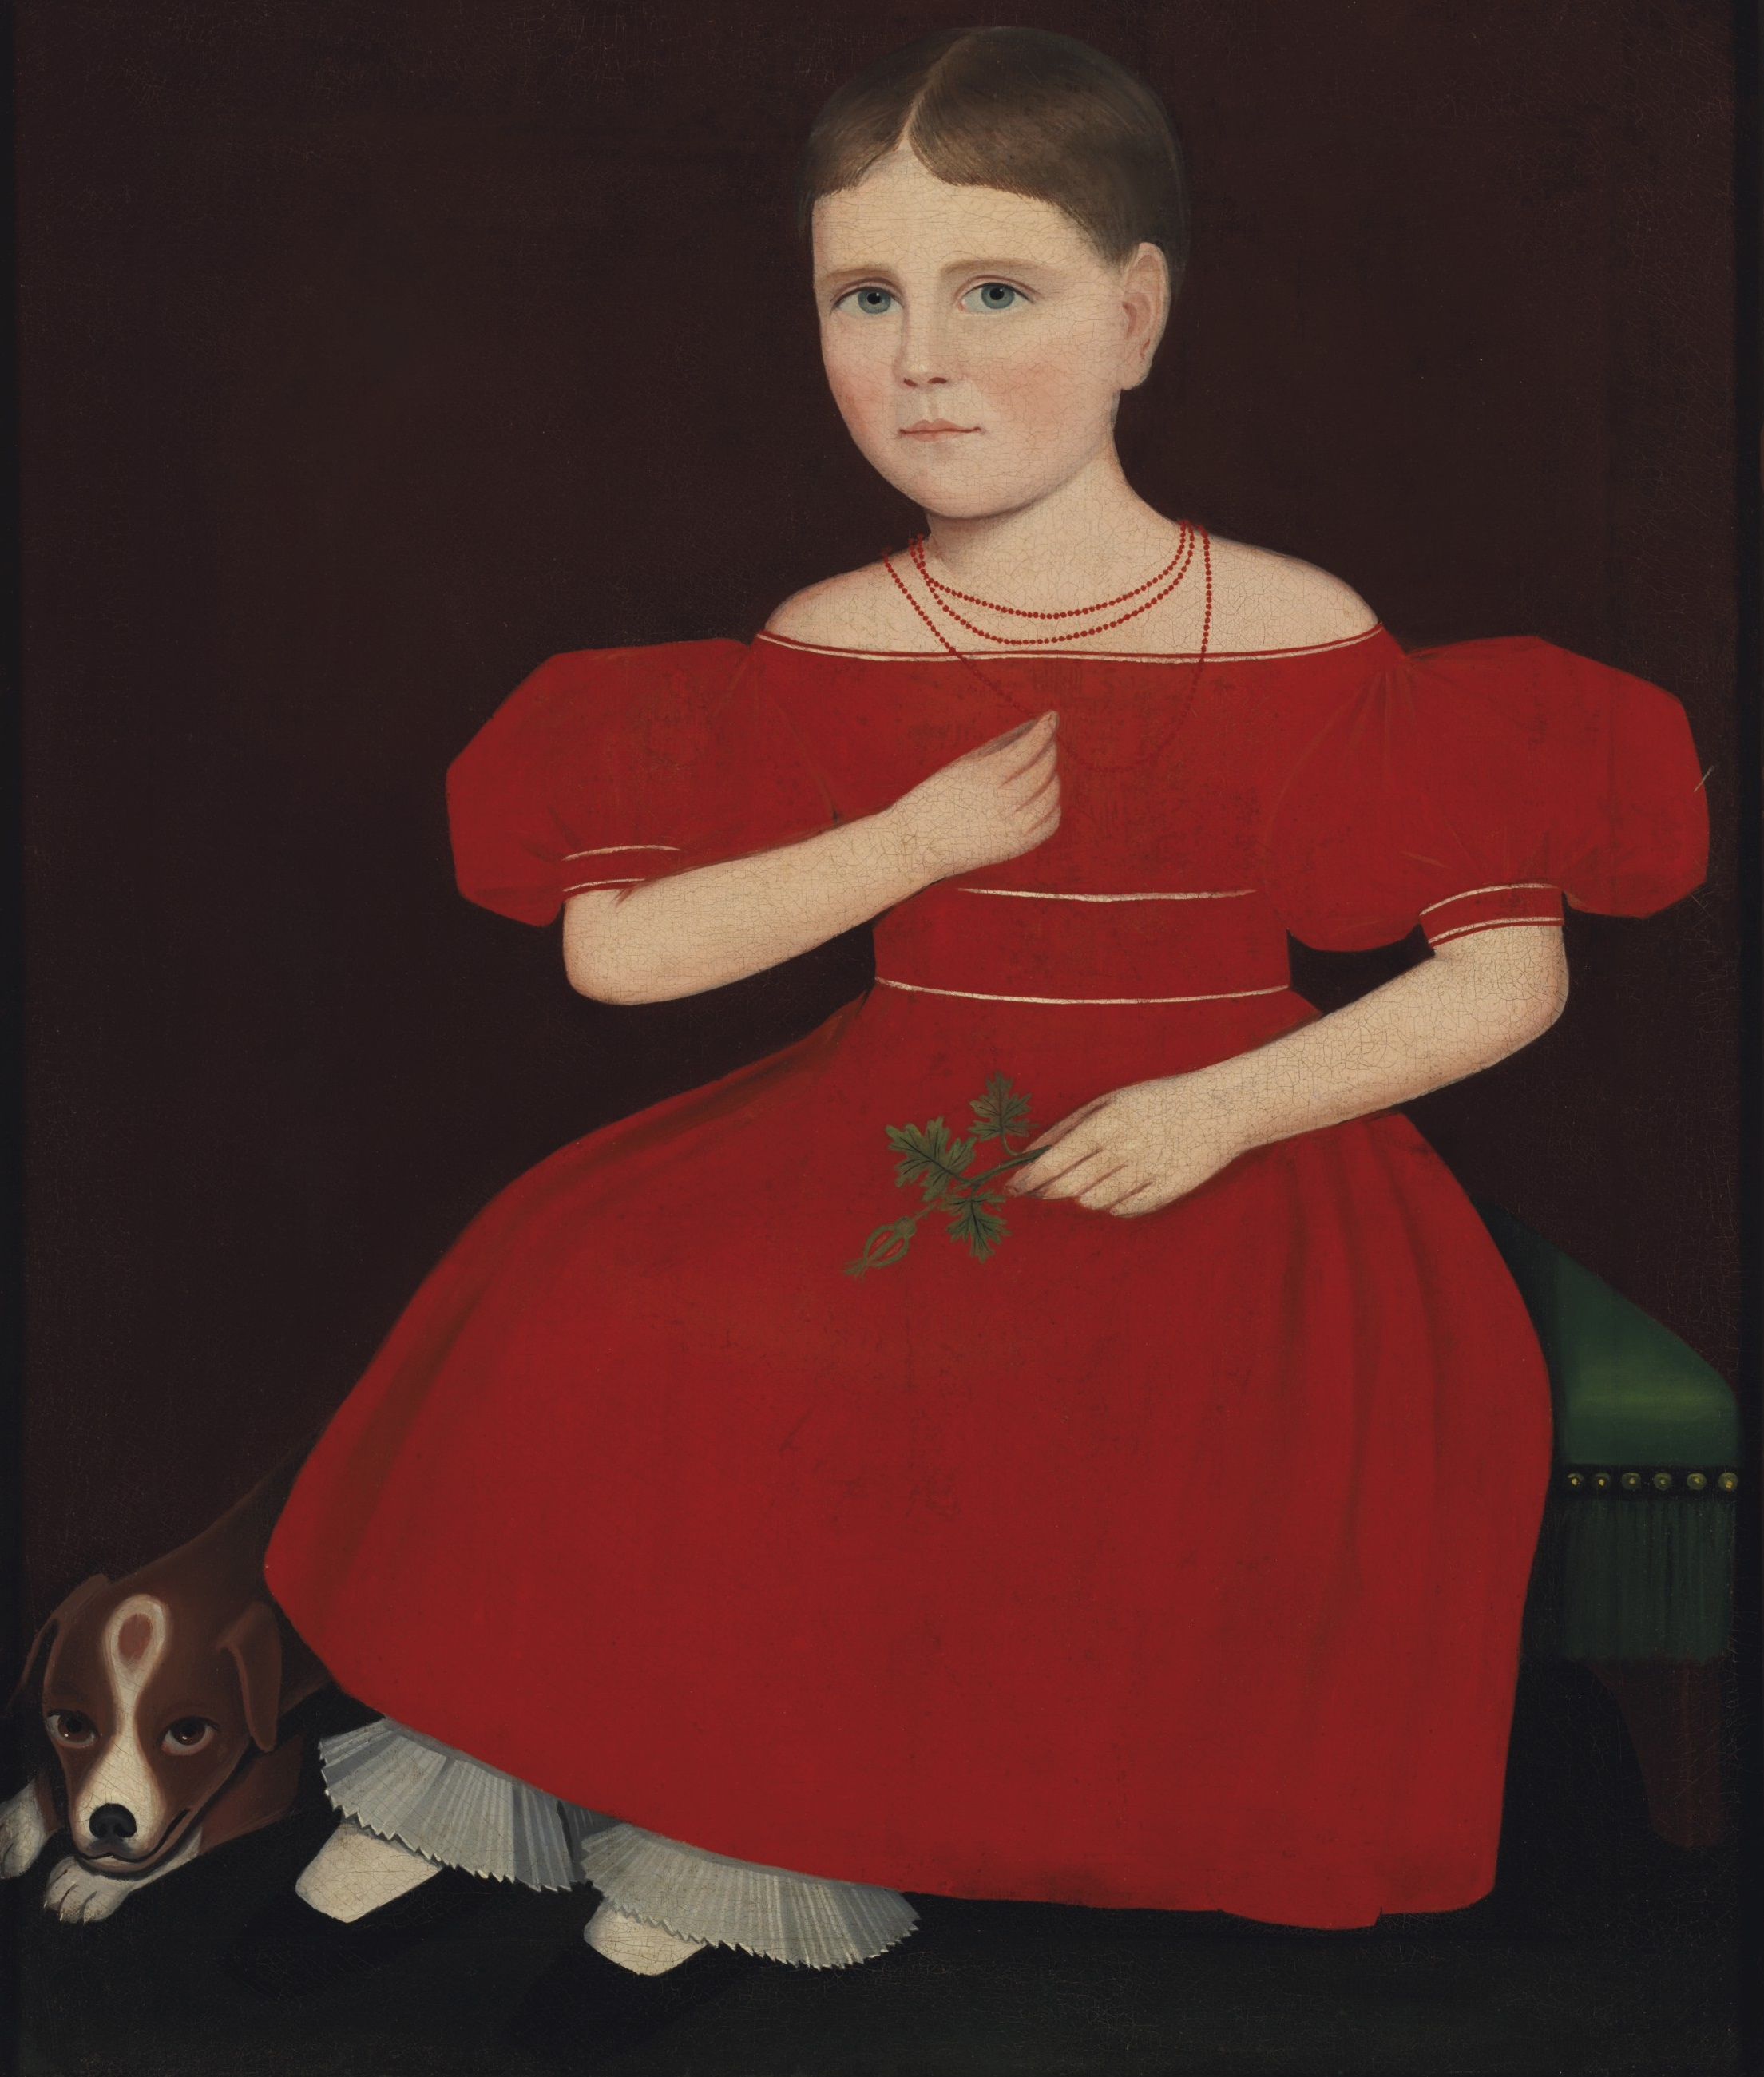 This magnificent portrait by American folk artist Ammi Phillips is the fourth most expensive lot featured on The Hot Bid in 2019.